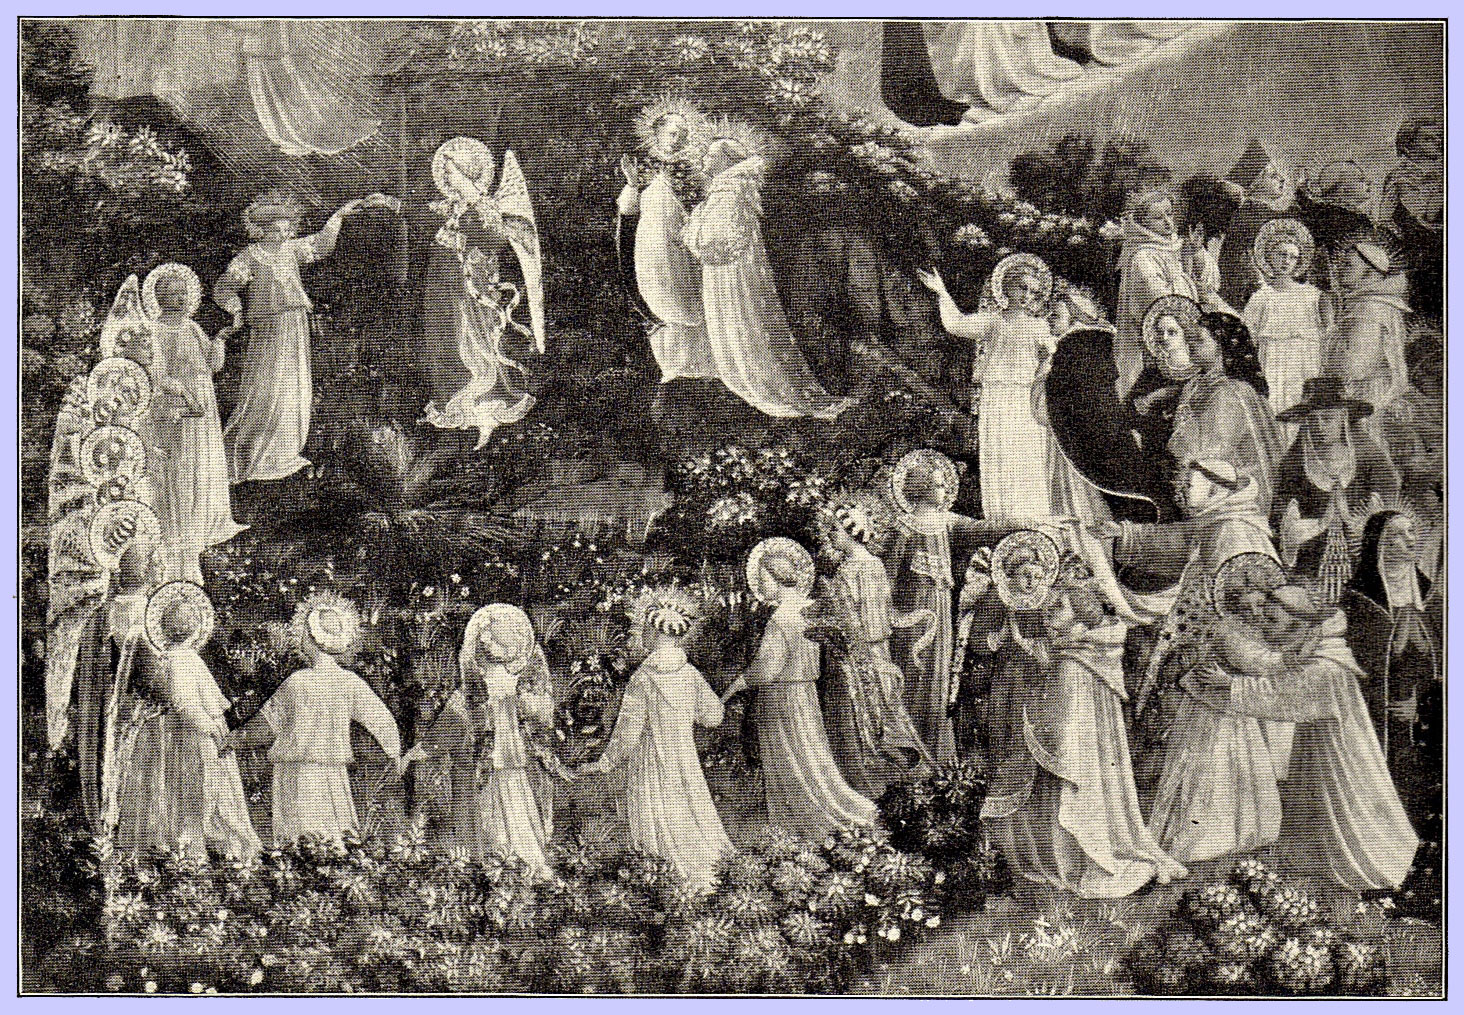 The Last Judgment by Fra Angelico, black and white picture with many figures, including angels holding hands in a flowery meadow holding hands, and some hugging each other, all with halos or wreathes of flowers on their heads